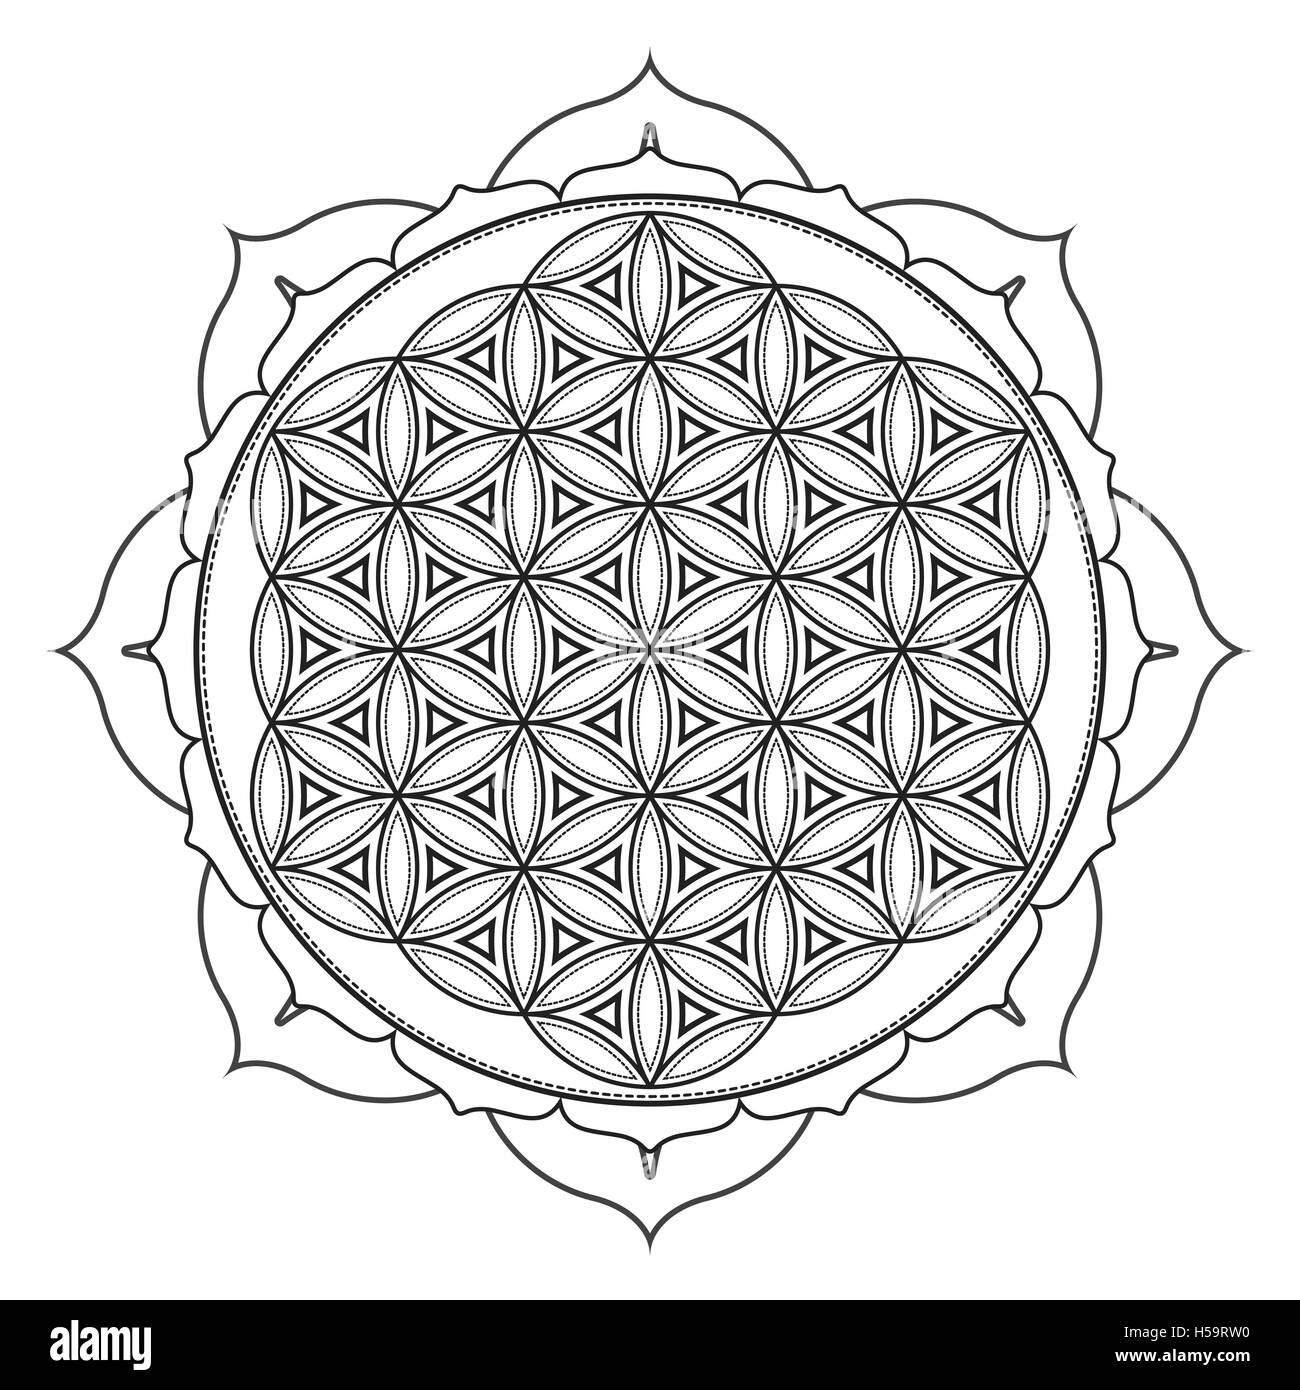 Sacred Geometry Abstract Design Flower Black And White Stock Photos